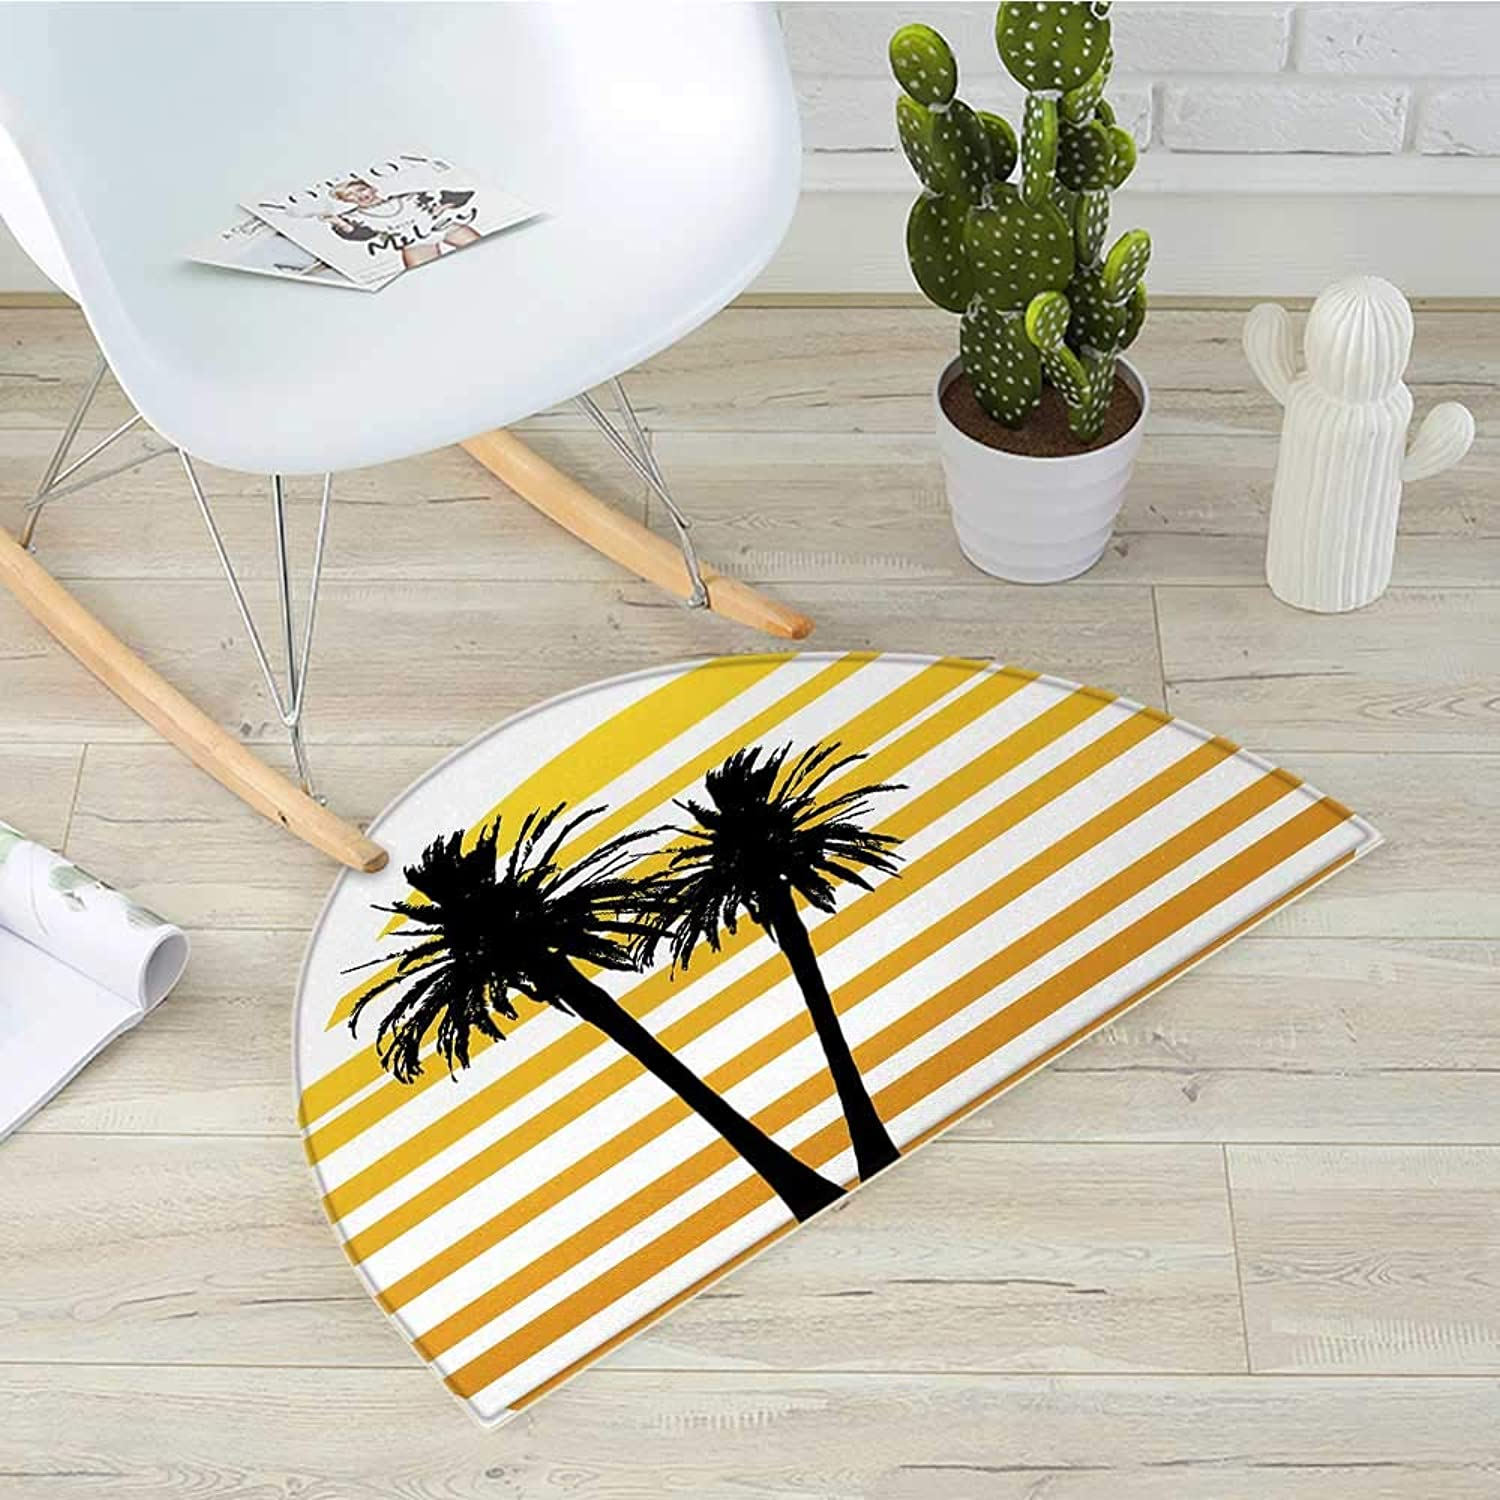 Tropical Semicircular CushionCoconut Palm Trees on Horizontal Tiled Background Summer Holiday Graphic Entry Door Mat H 39.3  xD 59  Apricot Yellow Black